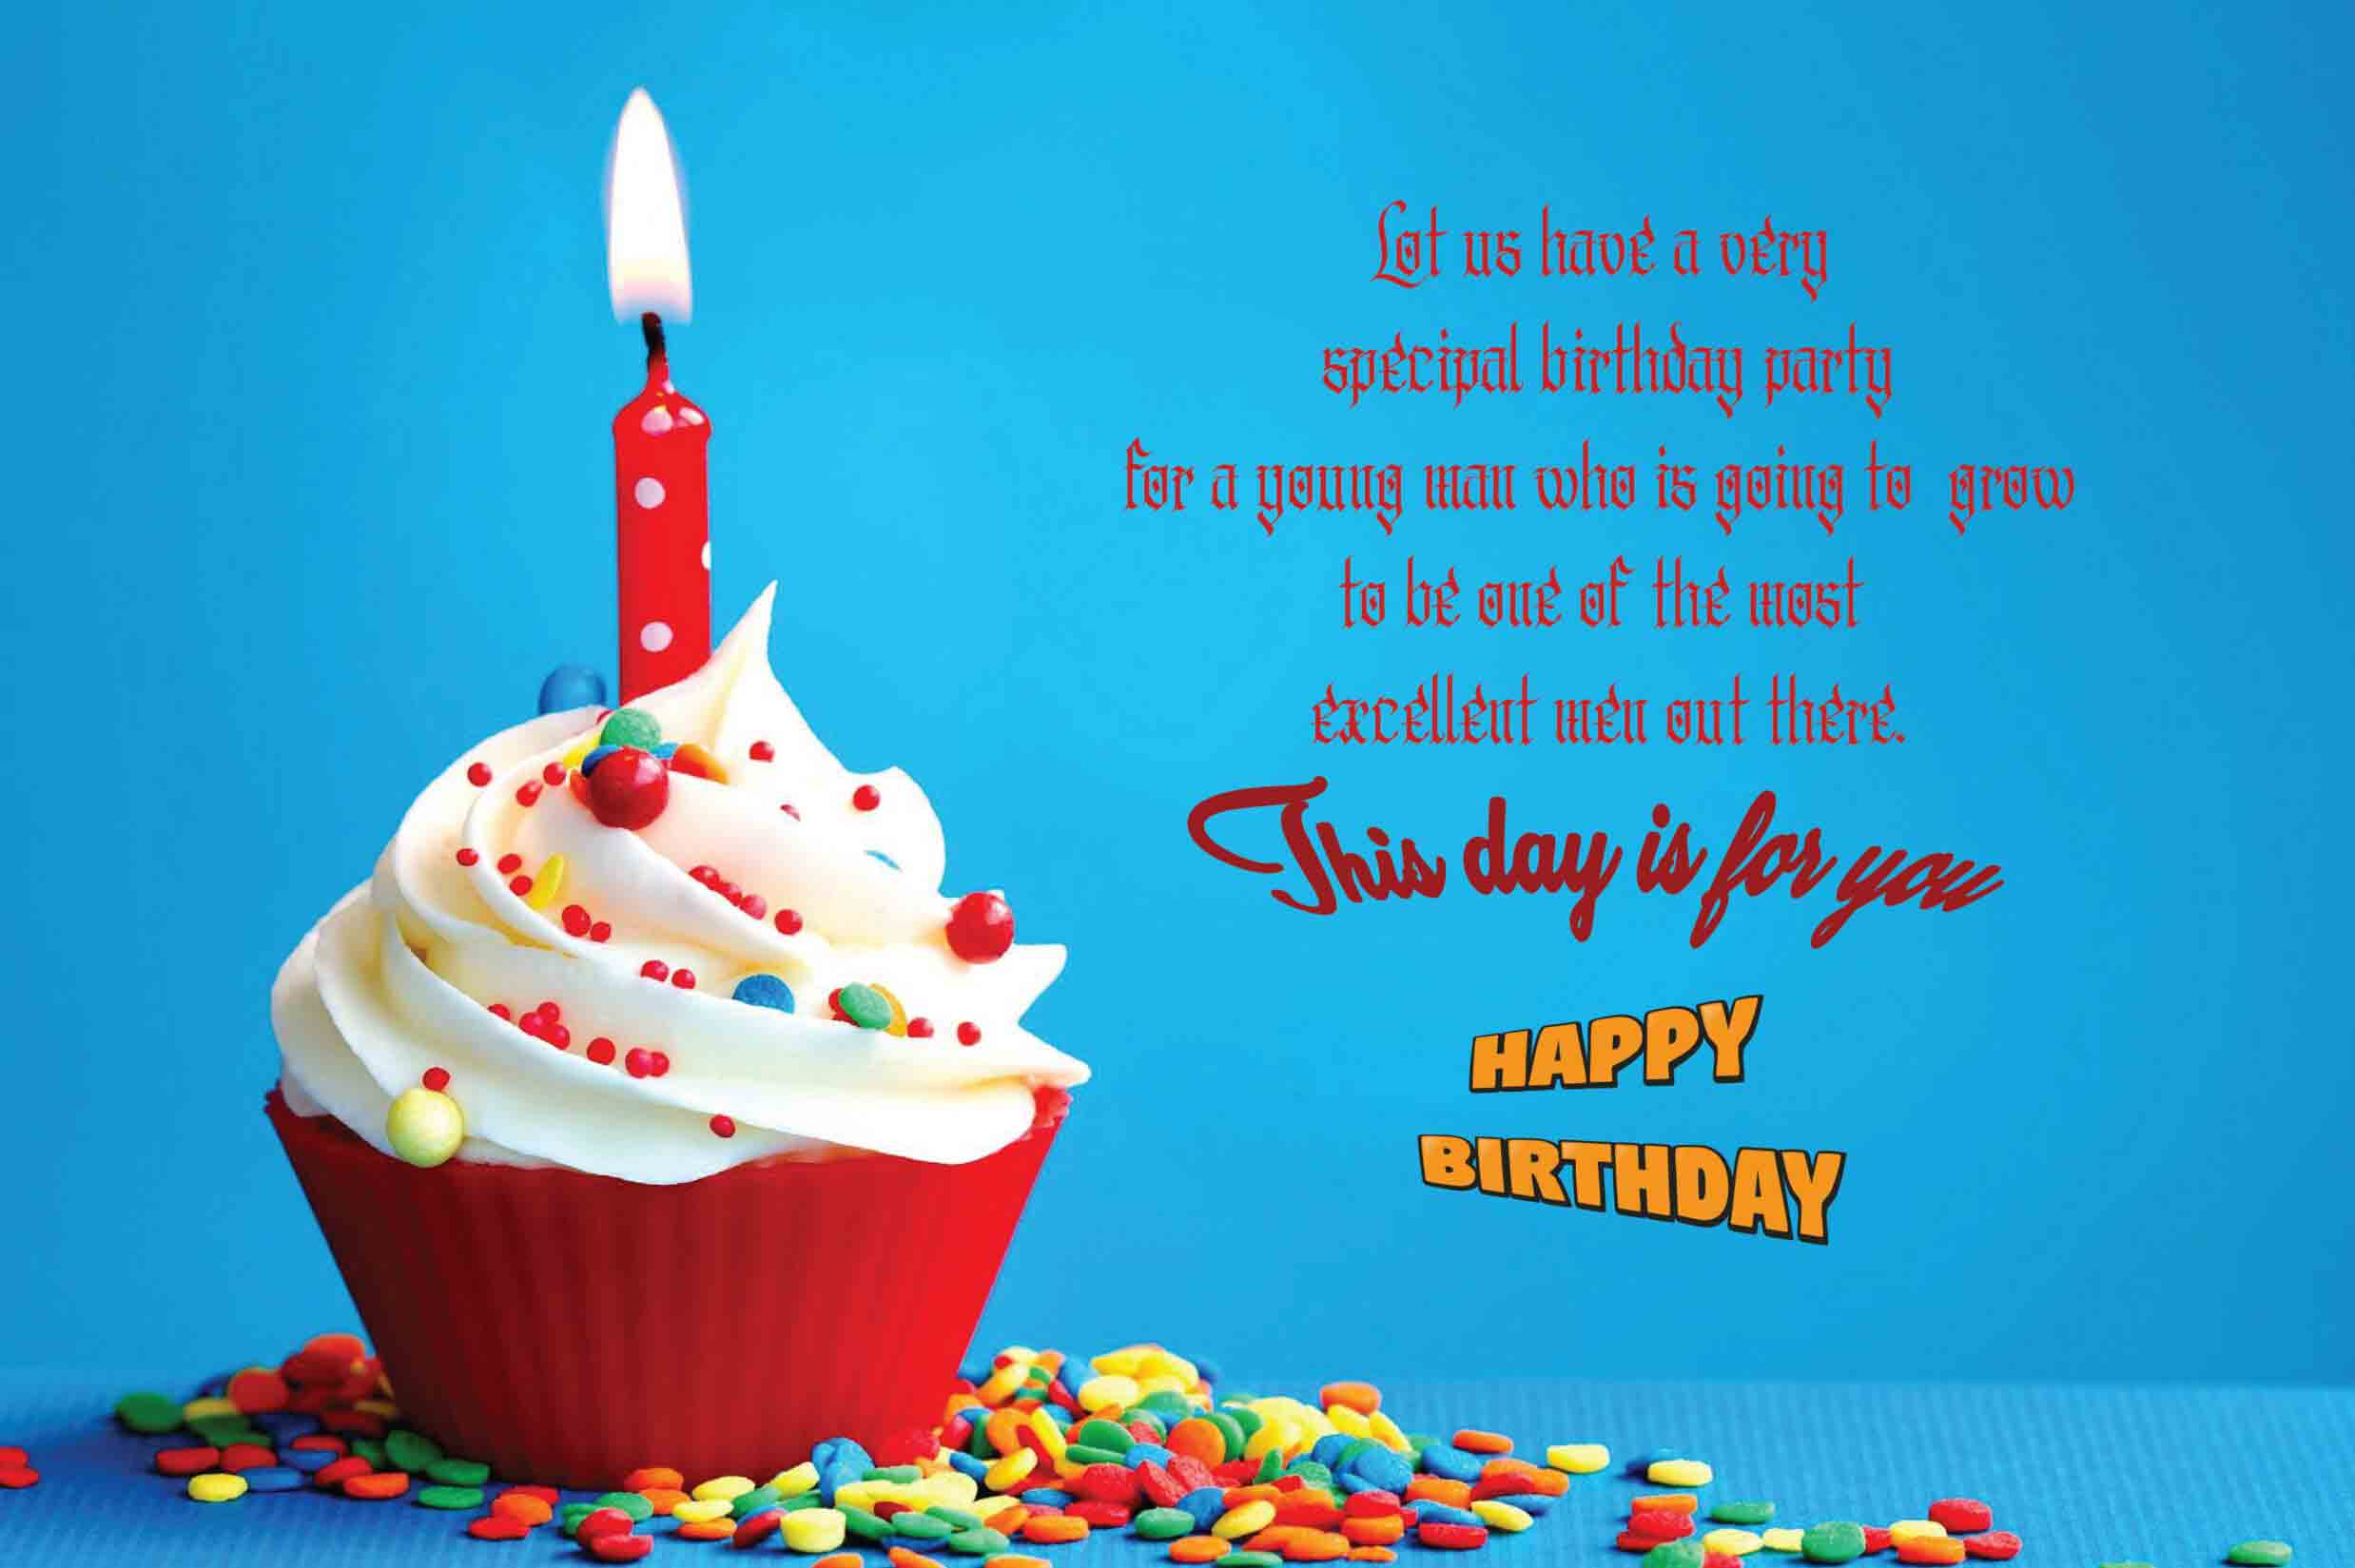 INSPIRATIONAL-BIRTHDAY-QUOTES-CARD